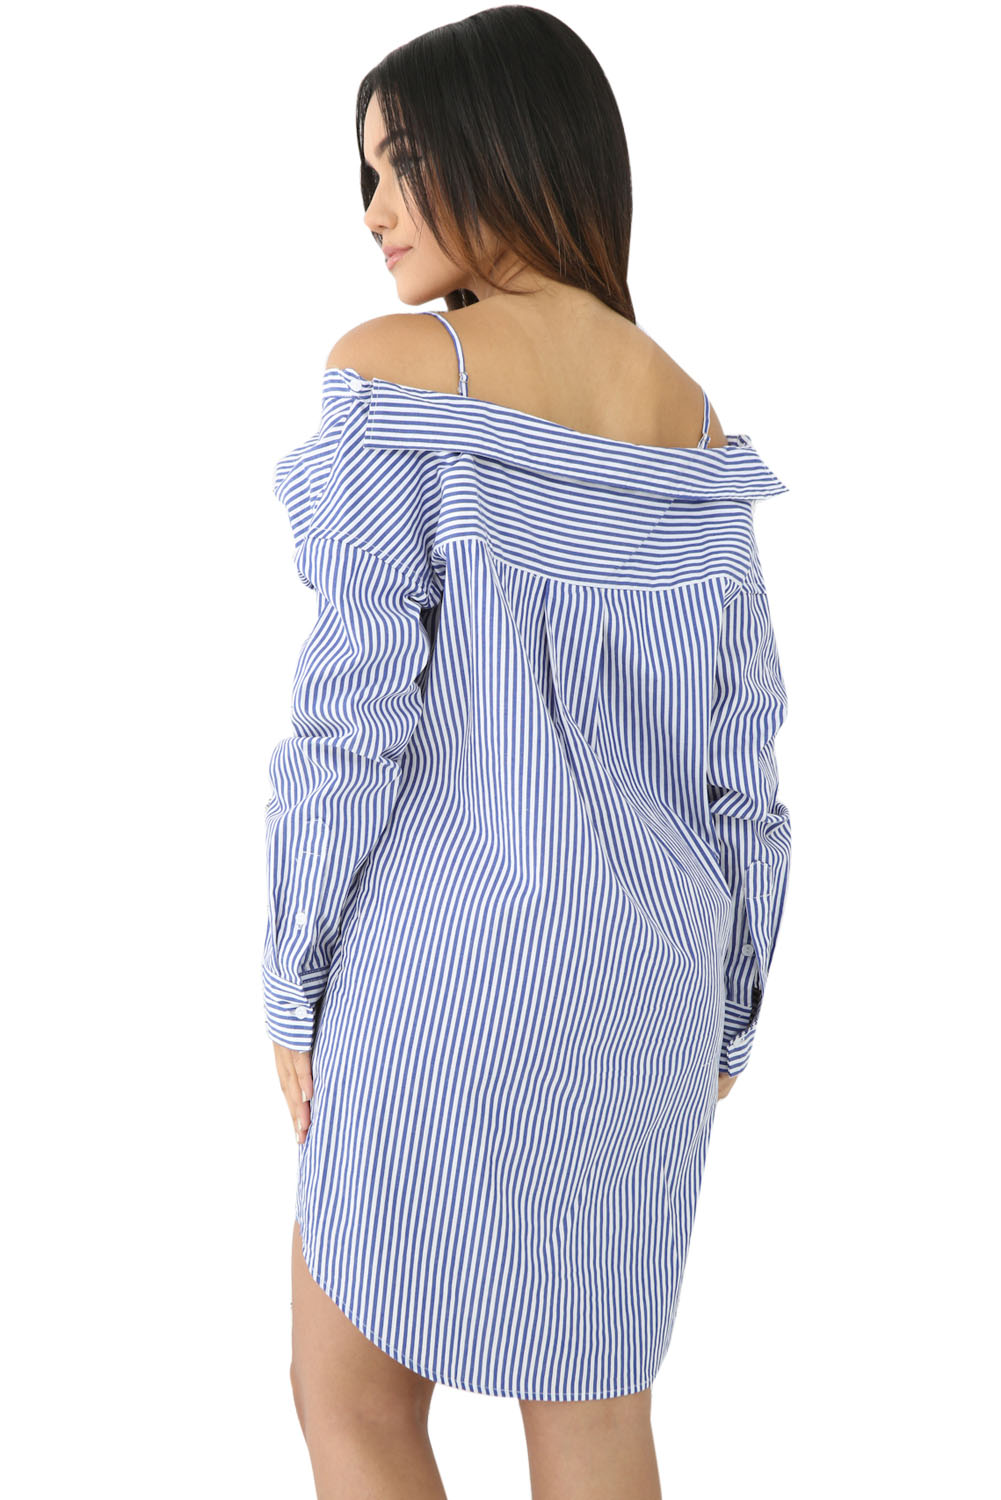 Blue White Pinstripe Sexy Off Shoulder Shirt